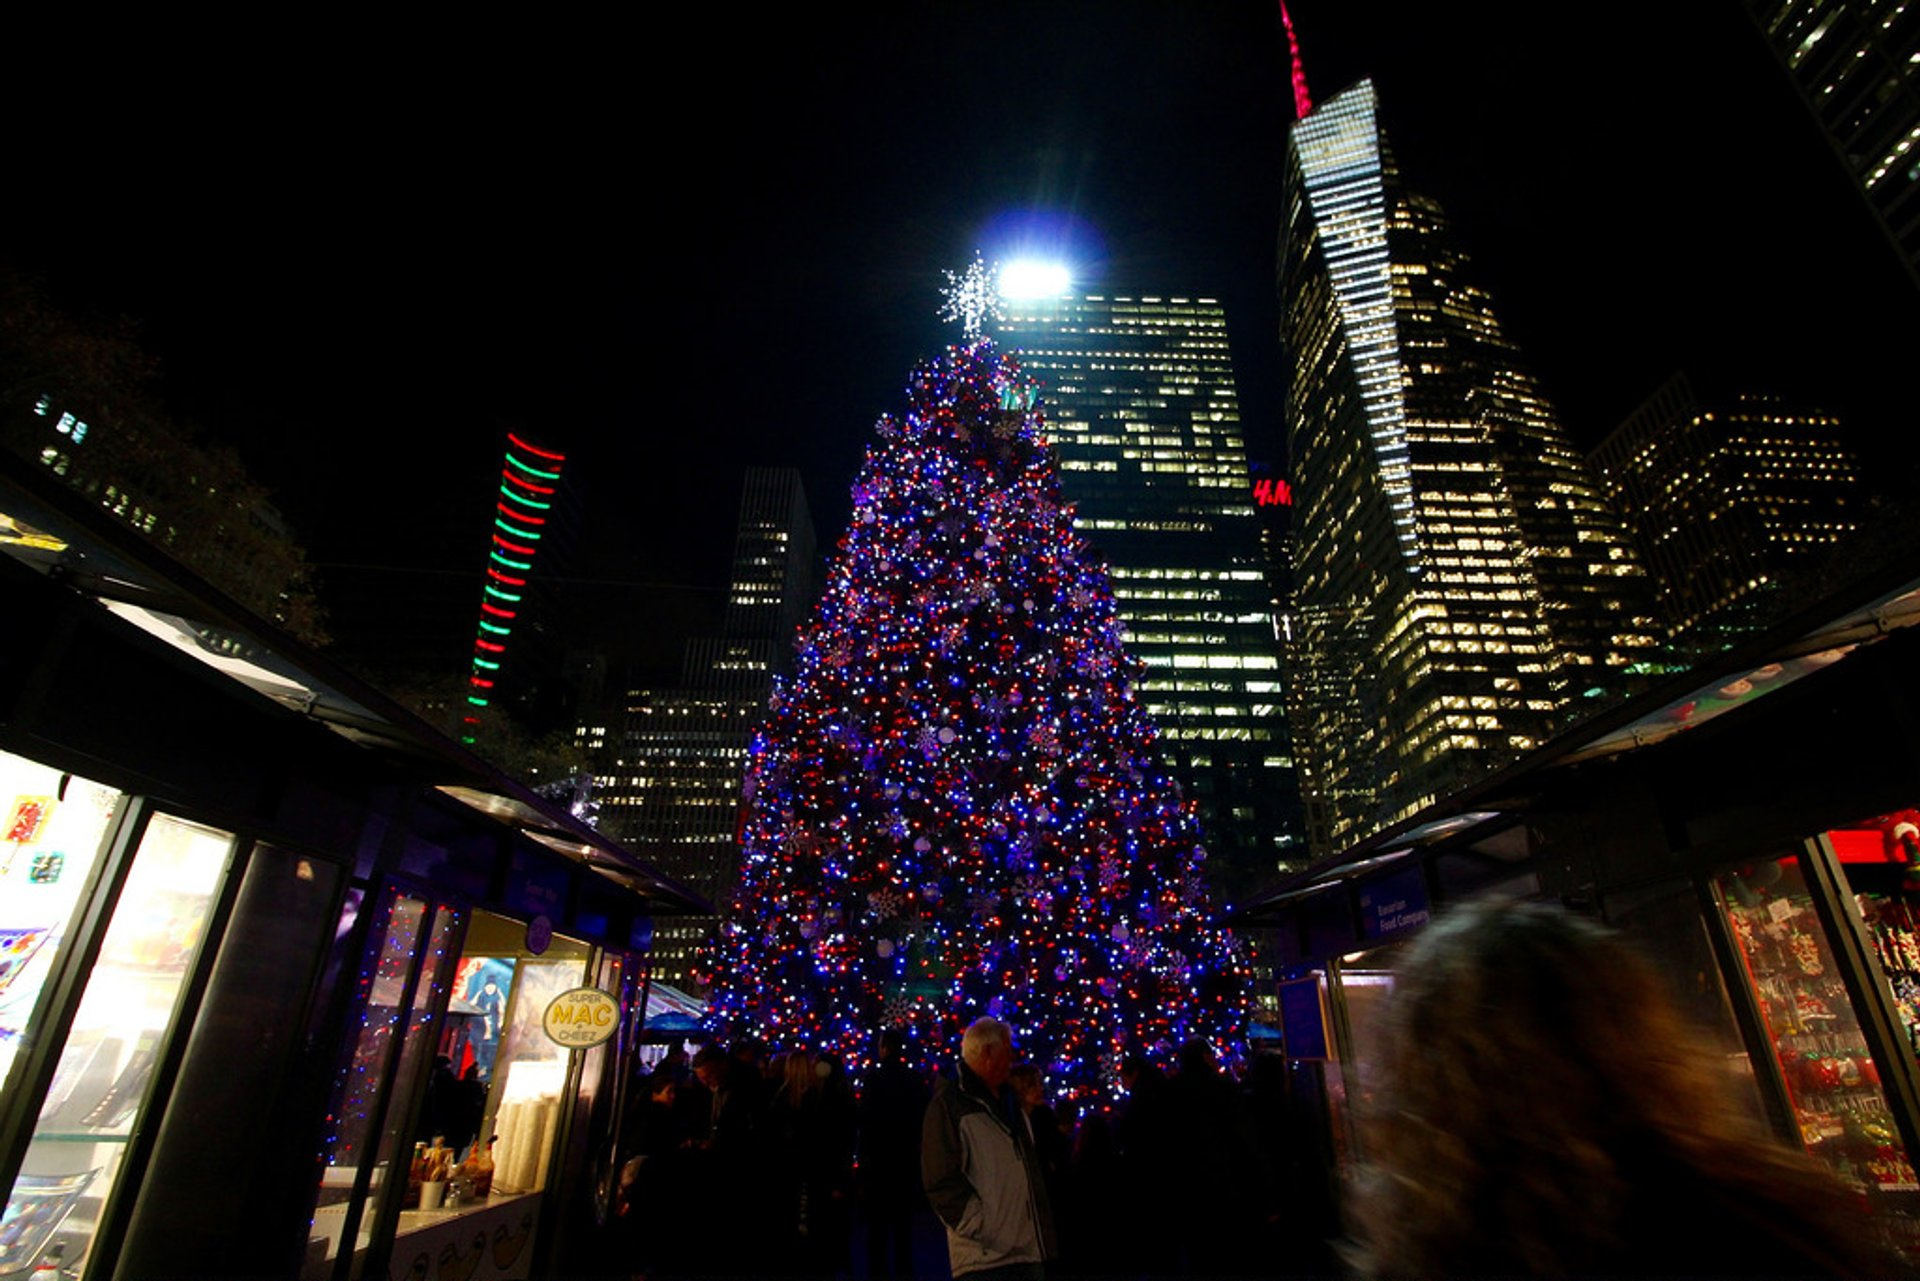 Christmas 2020.Christmas Lights 2019 2020 In New York Dates Map